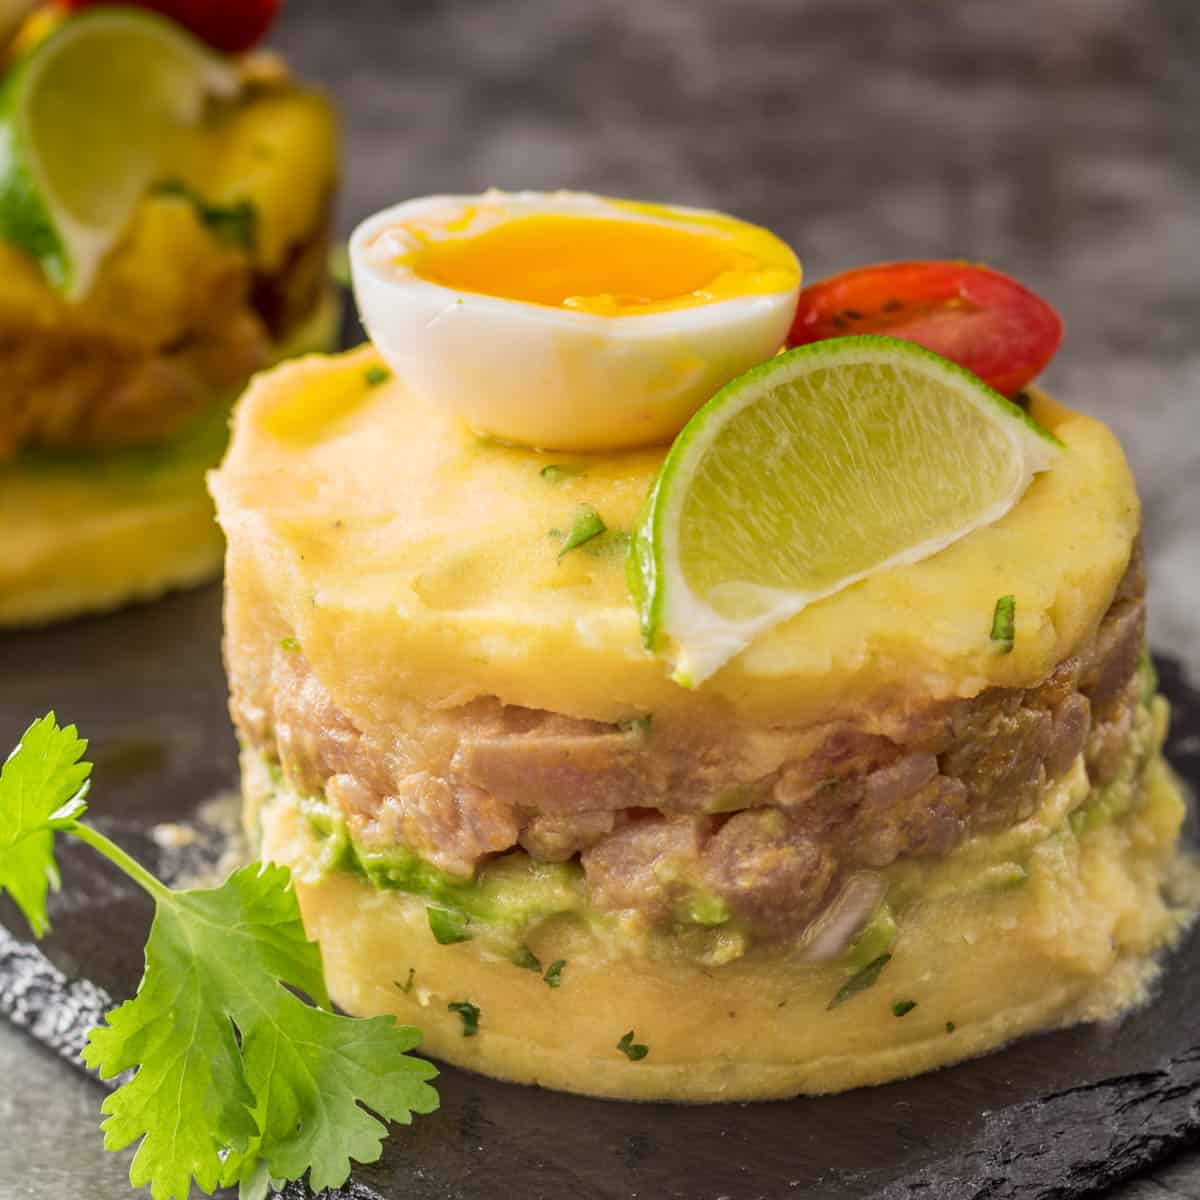 A close up of a tuna causa with a boiled egg, lime wedge, and tomato.